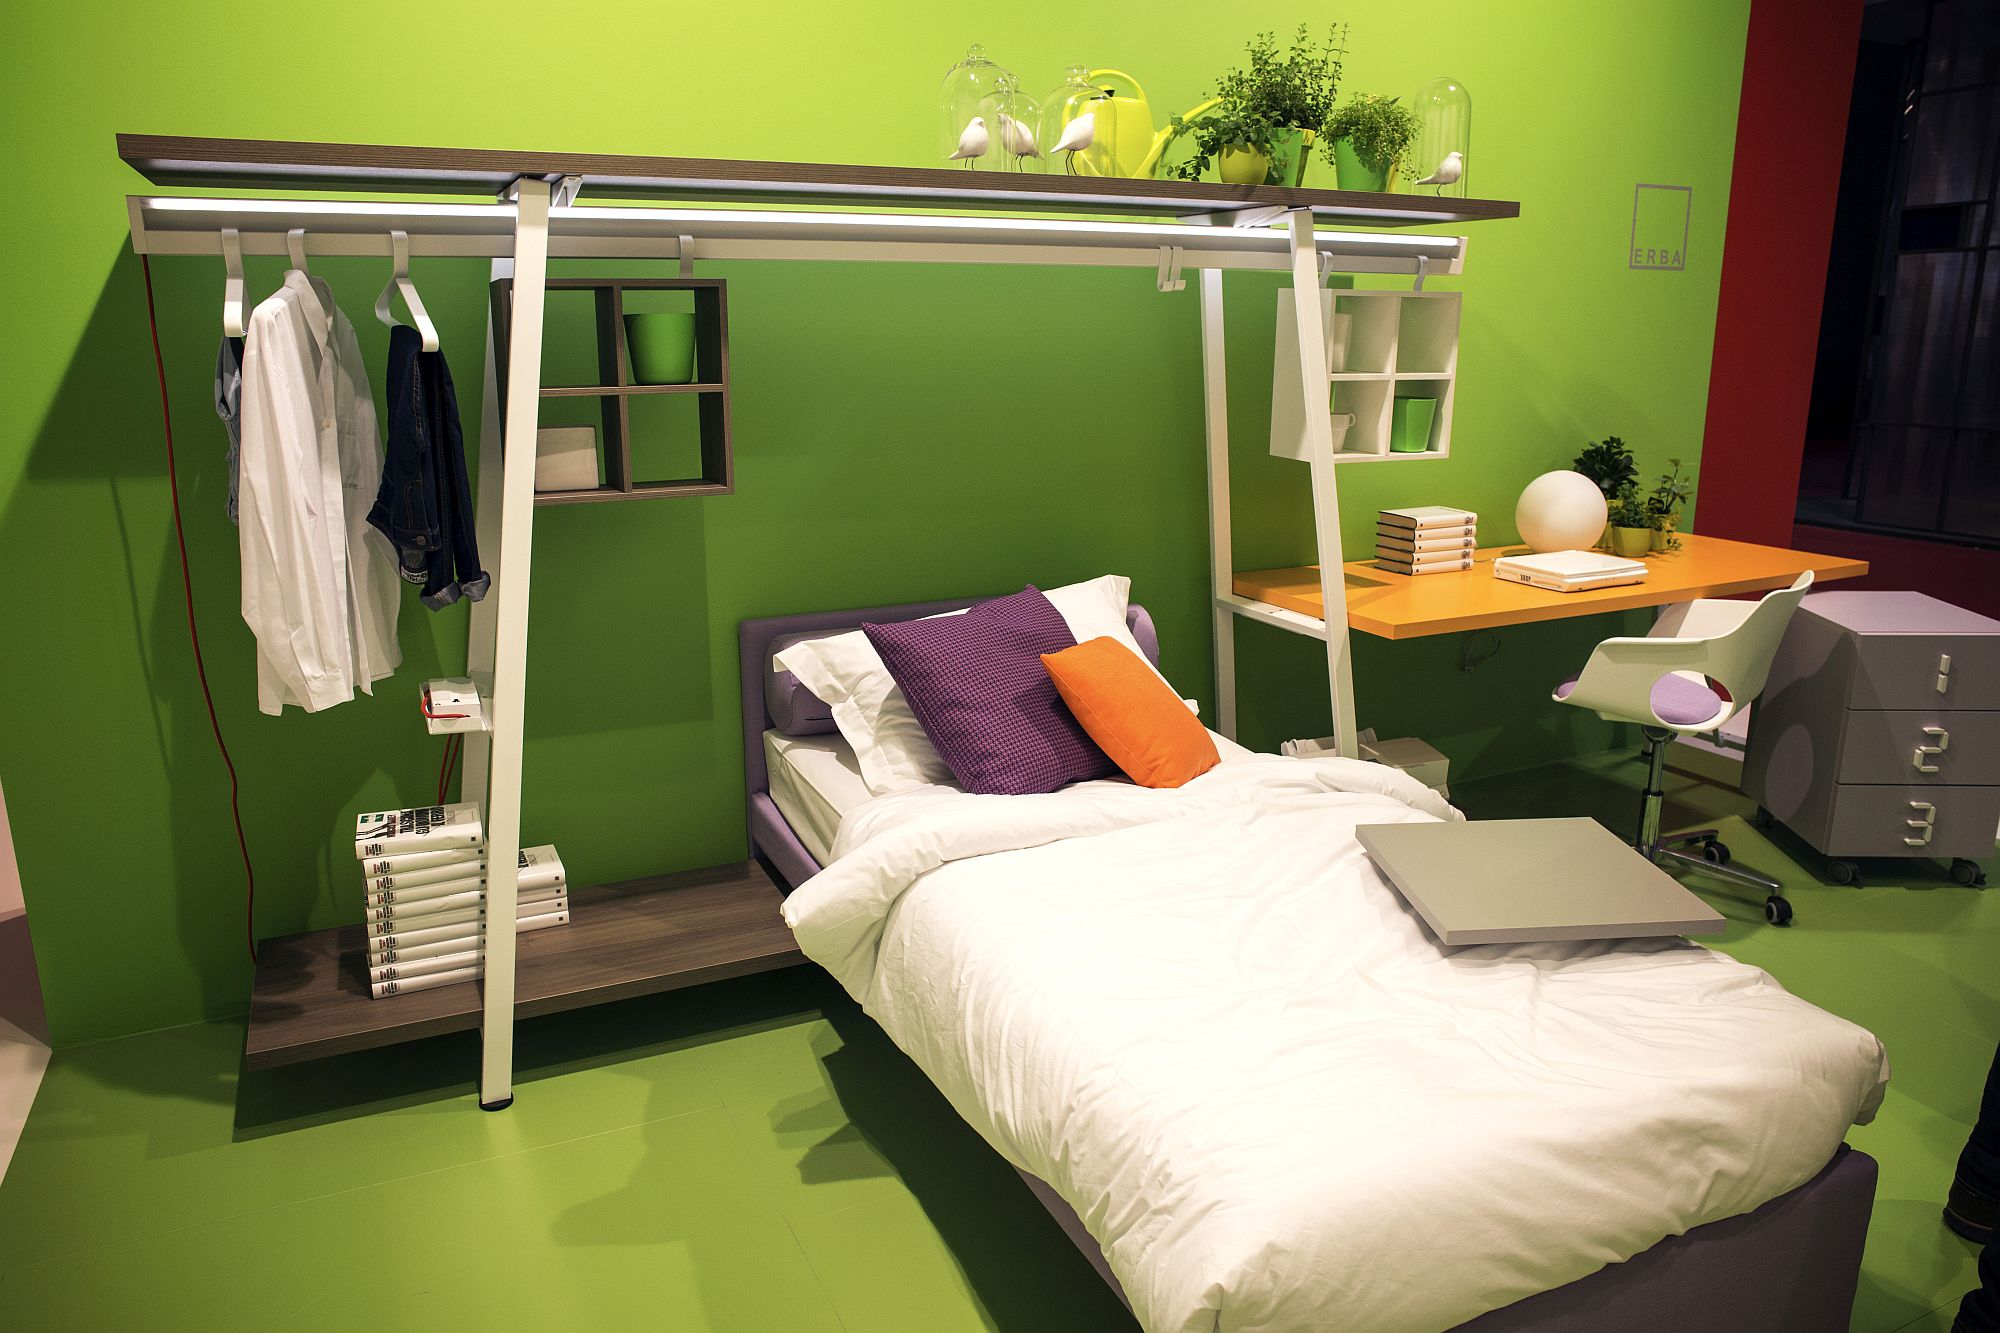 Space-savvy clothes hanger for the small bedroom